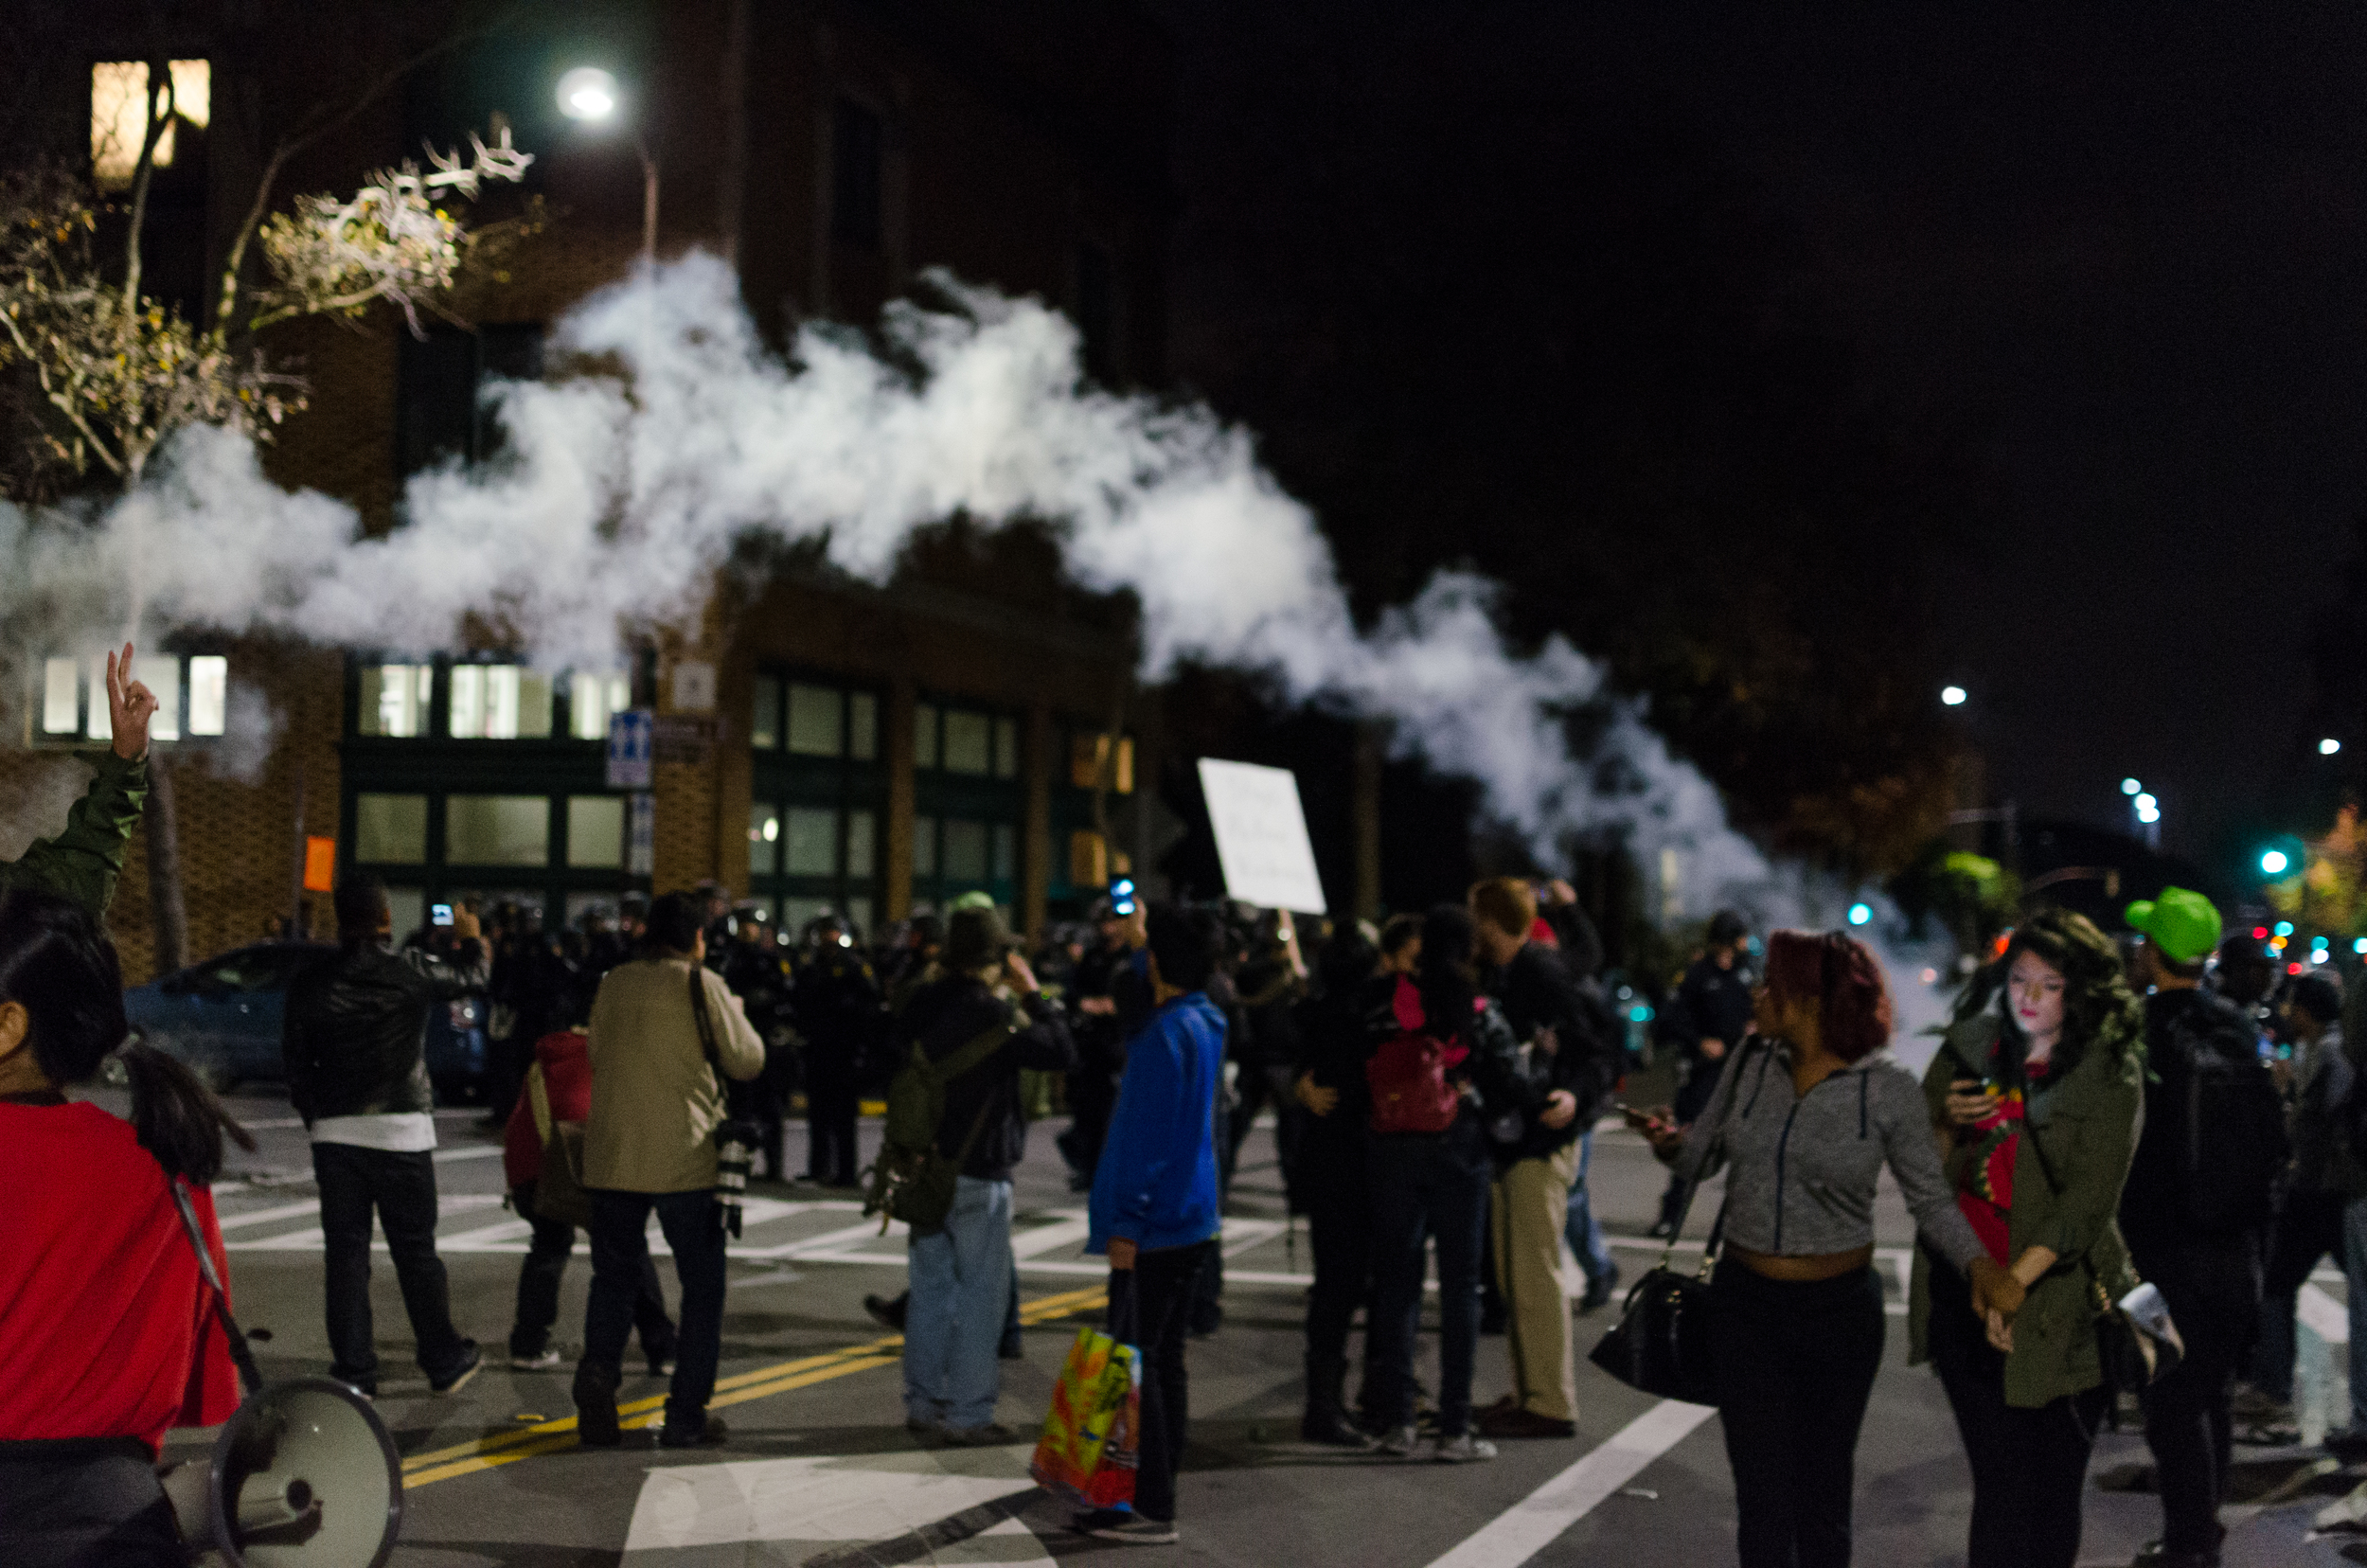 Gas or smoke fired near Police Station on December 6th - photo by Kyle Cameron